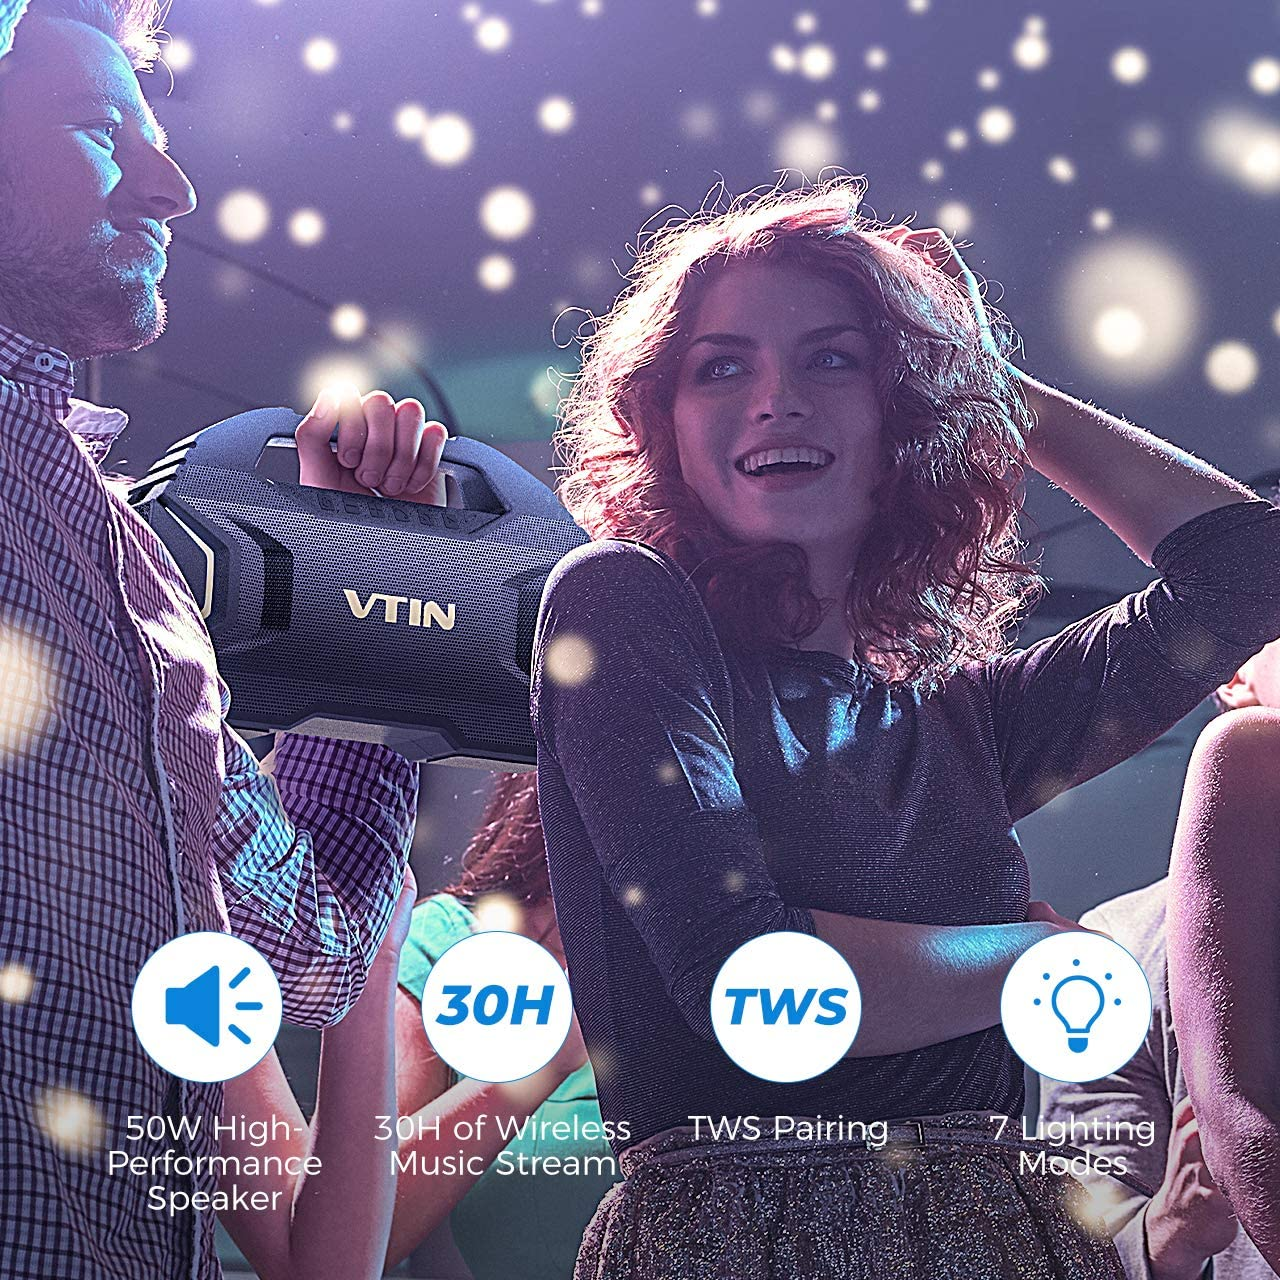 Support TF Card Suitable for Party//Camping//Outdoor VTIN R7 Bluetooth Speakers Waterproof Outdoor Speakers with Powerful Bass 50W Wireless Stereo Pairing Speaker with 30H Playtime 7 Lighting Mode